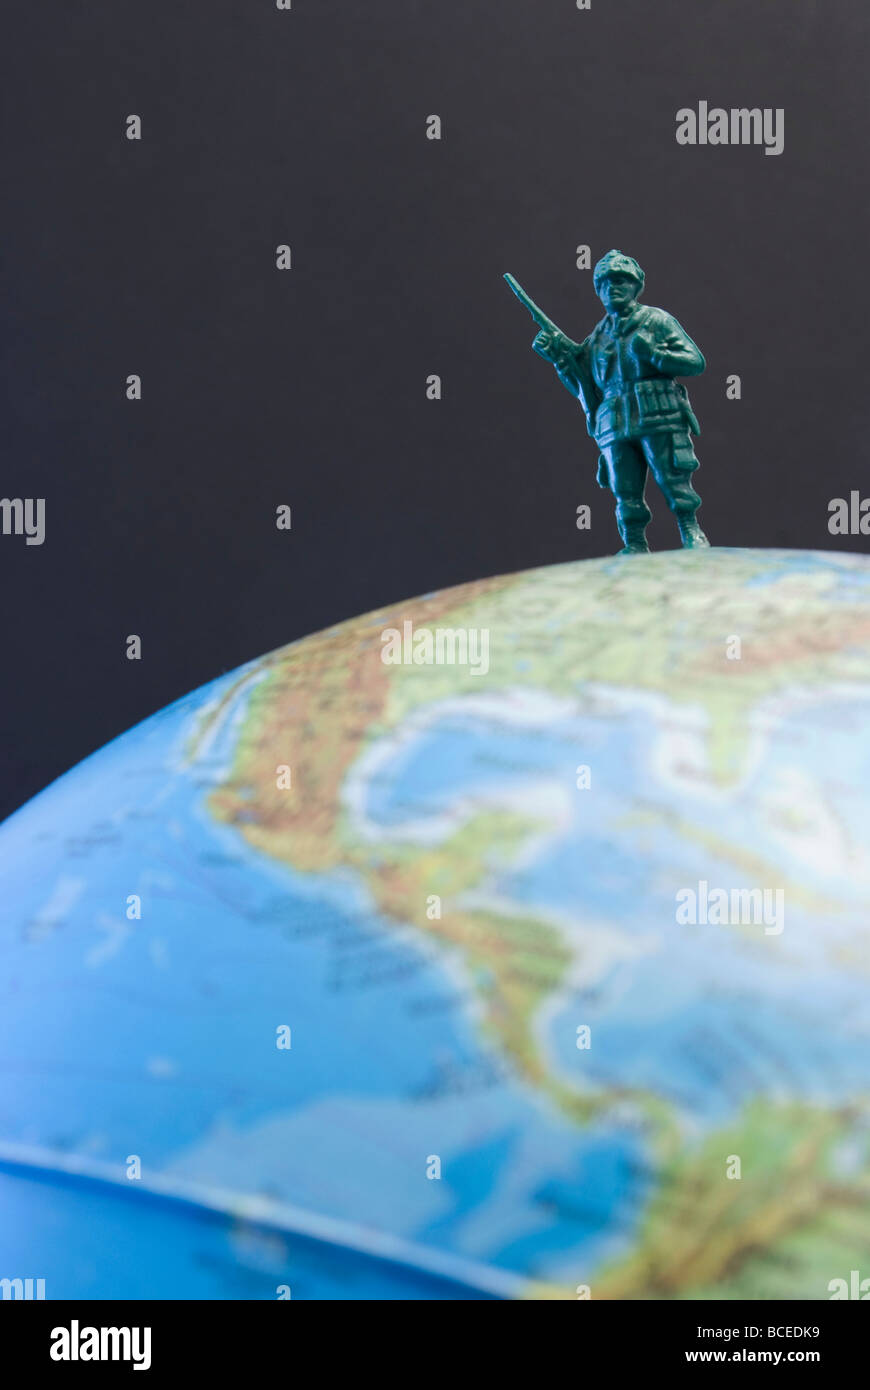 toy soldier on the globe - Stock Image